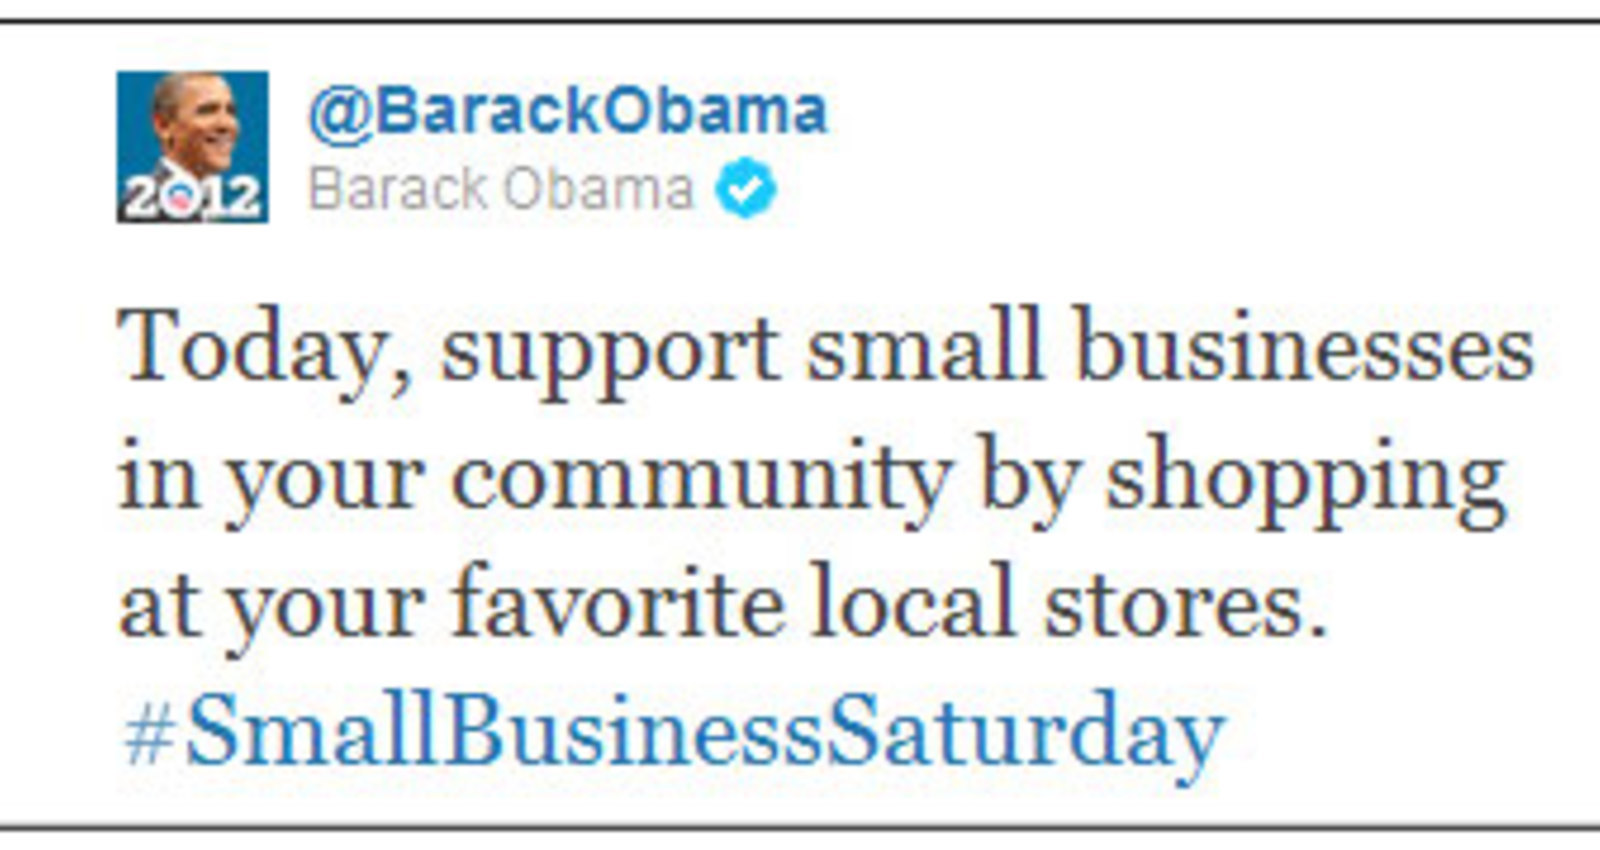 Small Business Gets an Official Day